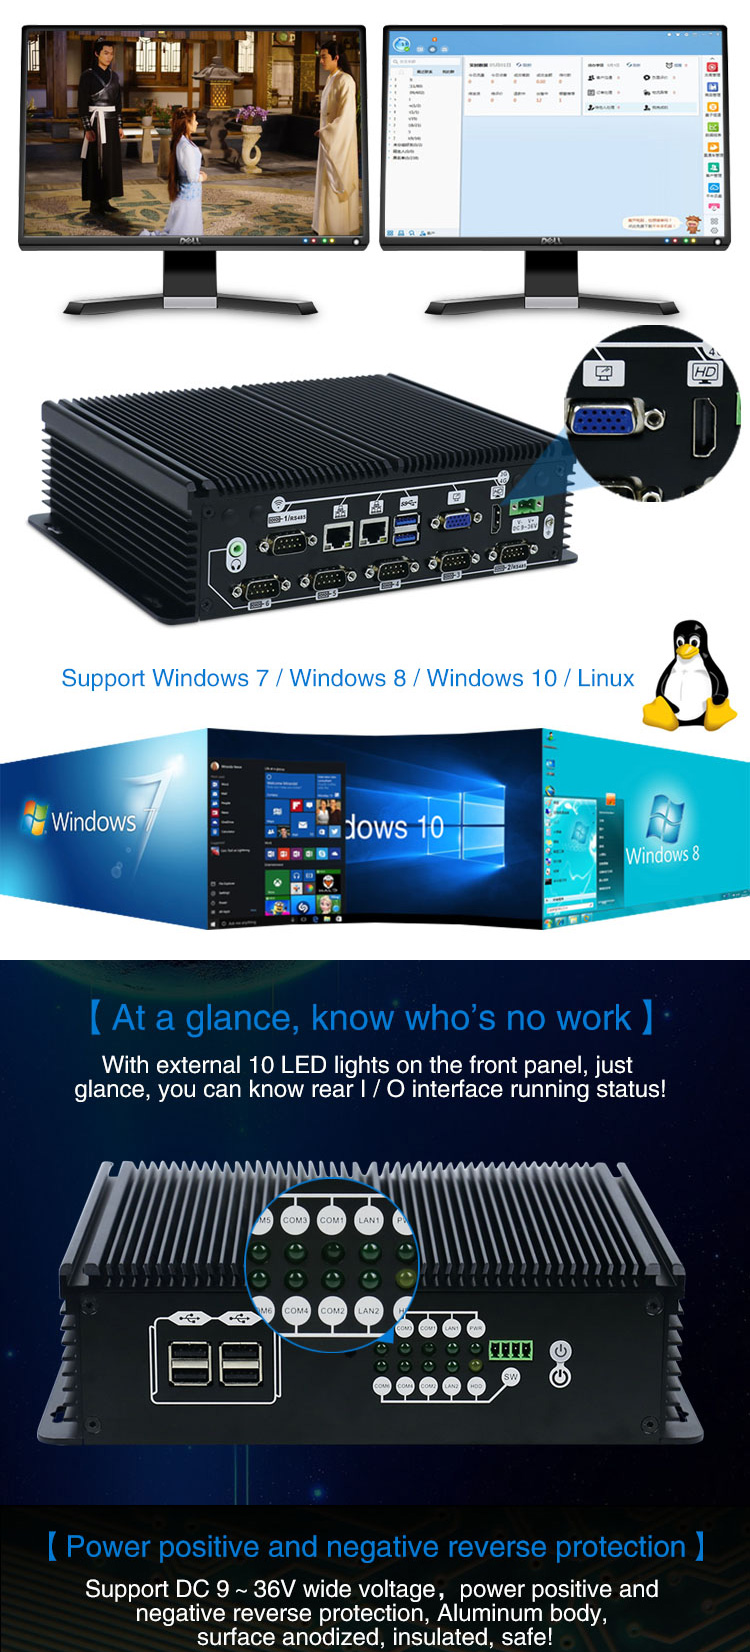 Intel J1900 quad core fanless industrial computer with 2 Intel Lan support 4G LTE and WiFi